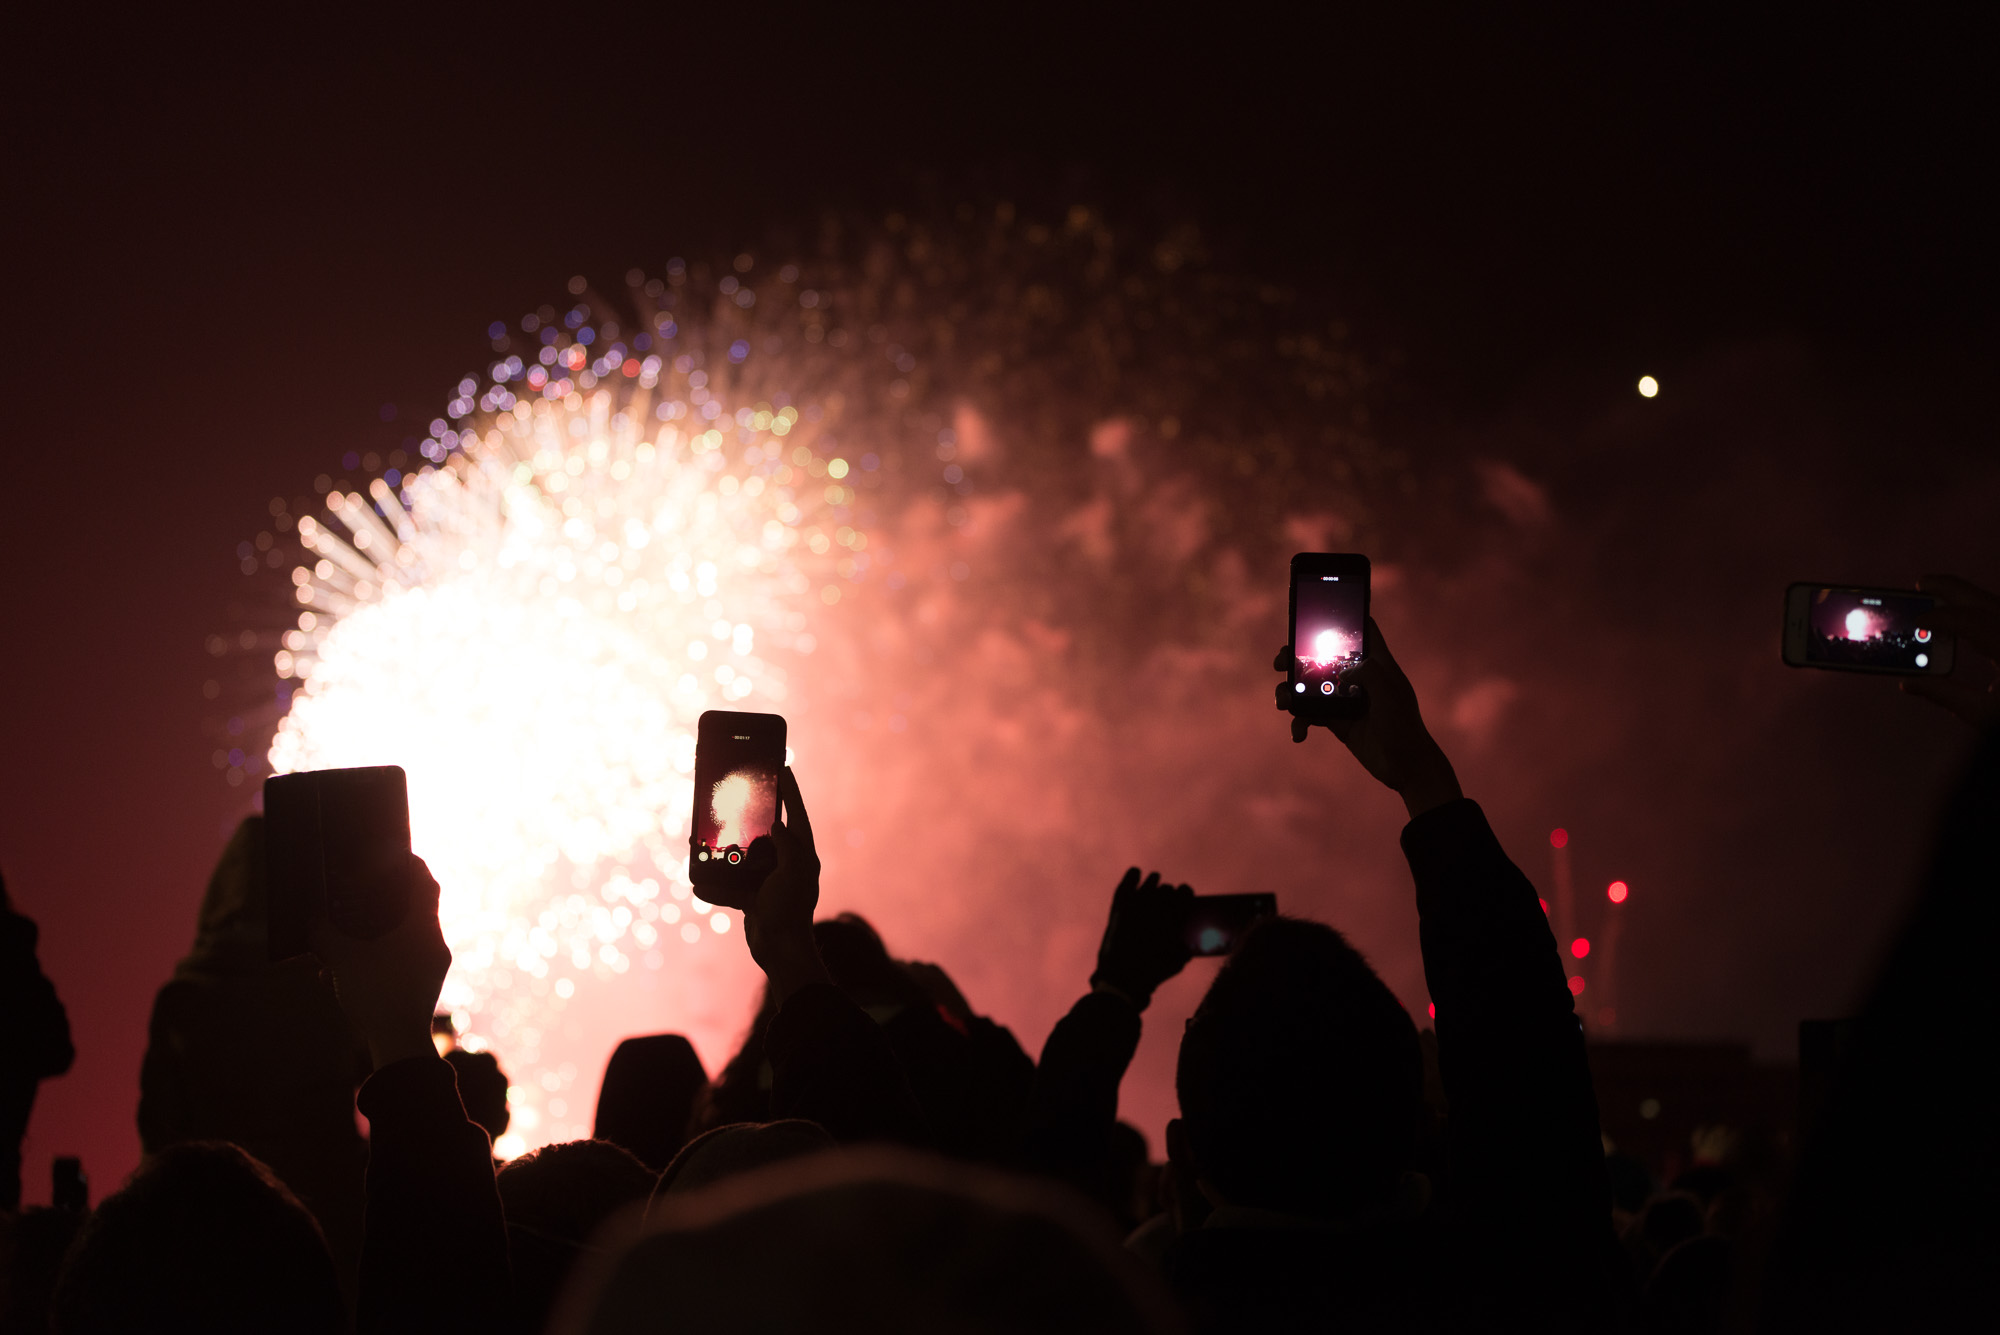 Four phones are held in the air taking photos and videos of fireworks in the distance.